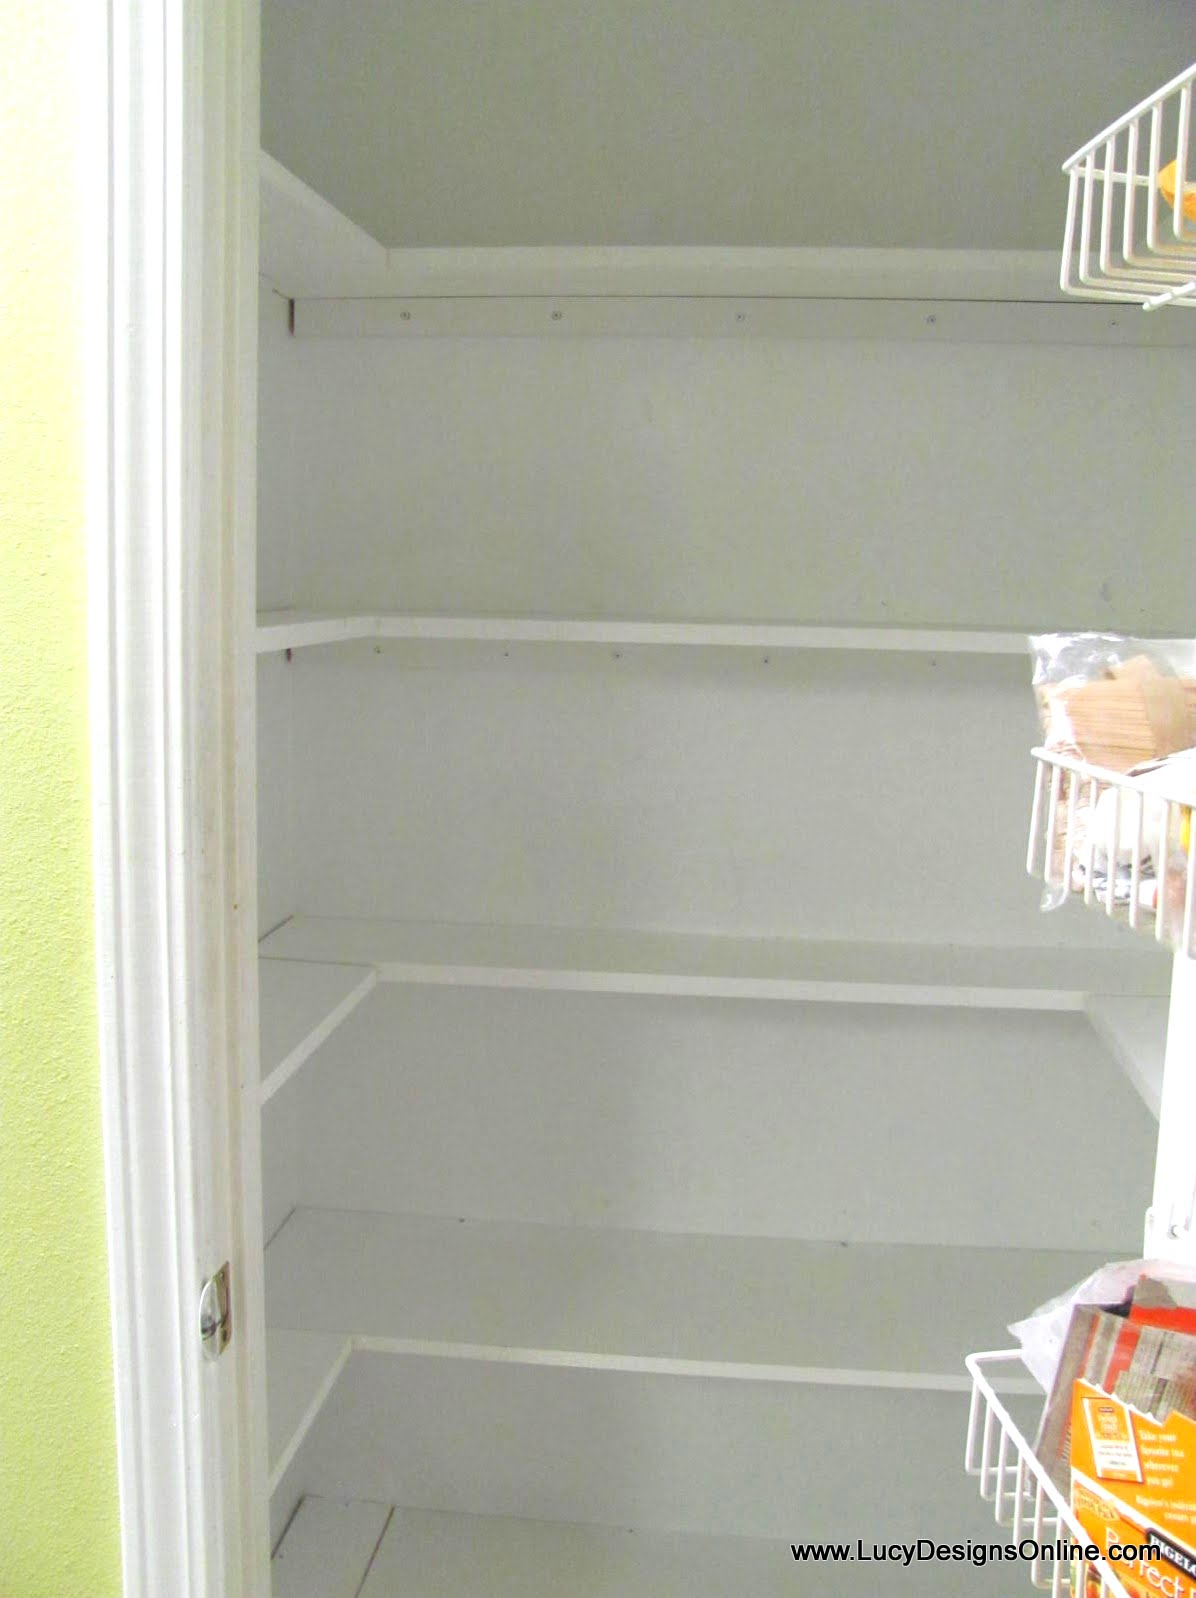 Kitchen Pantry Makeover DIY Installing Wood Wrap Around Shelving to ...